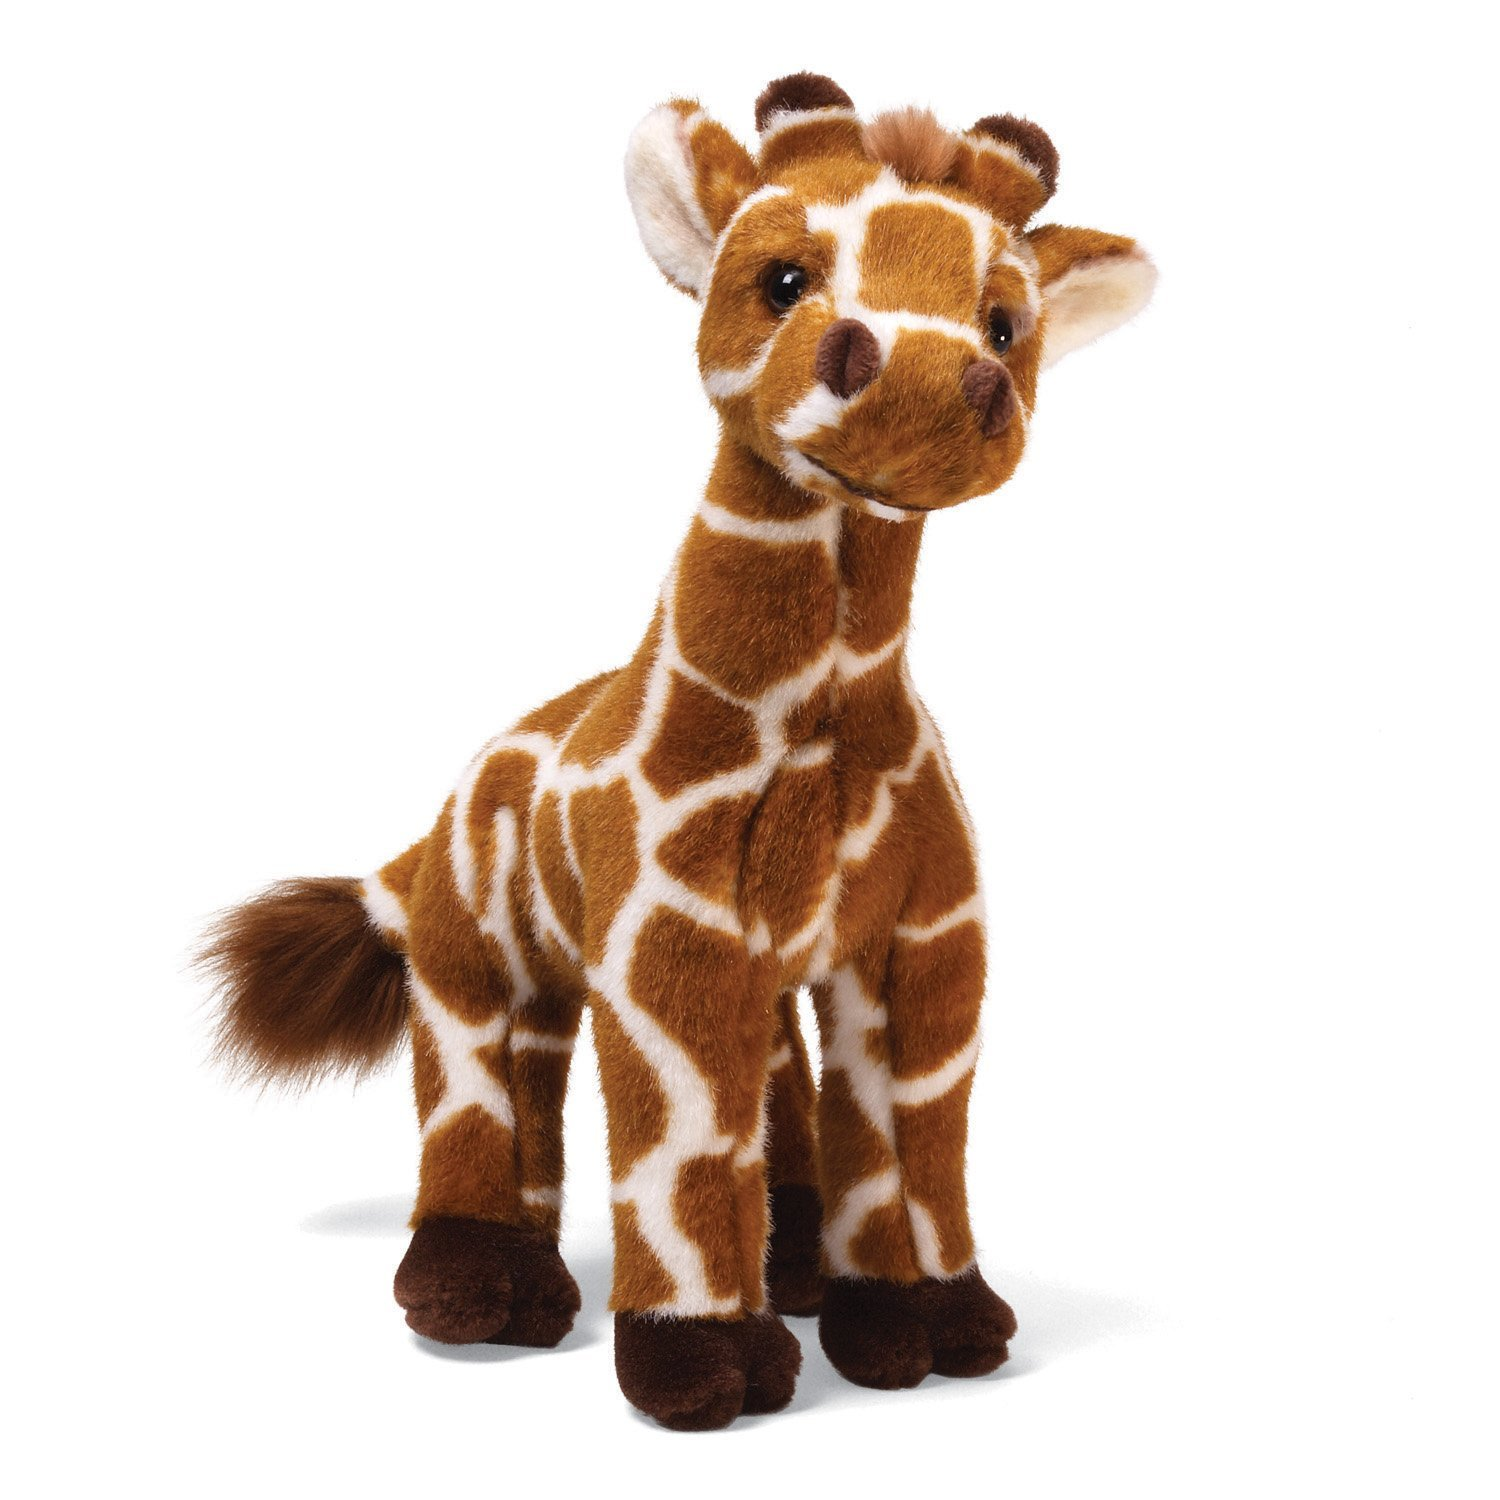 Giraffe Small 11 Plush The World S Most Huggable Since 1898 By